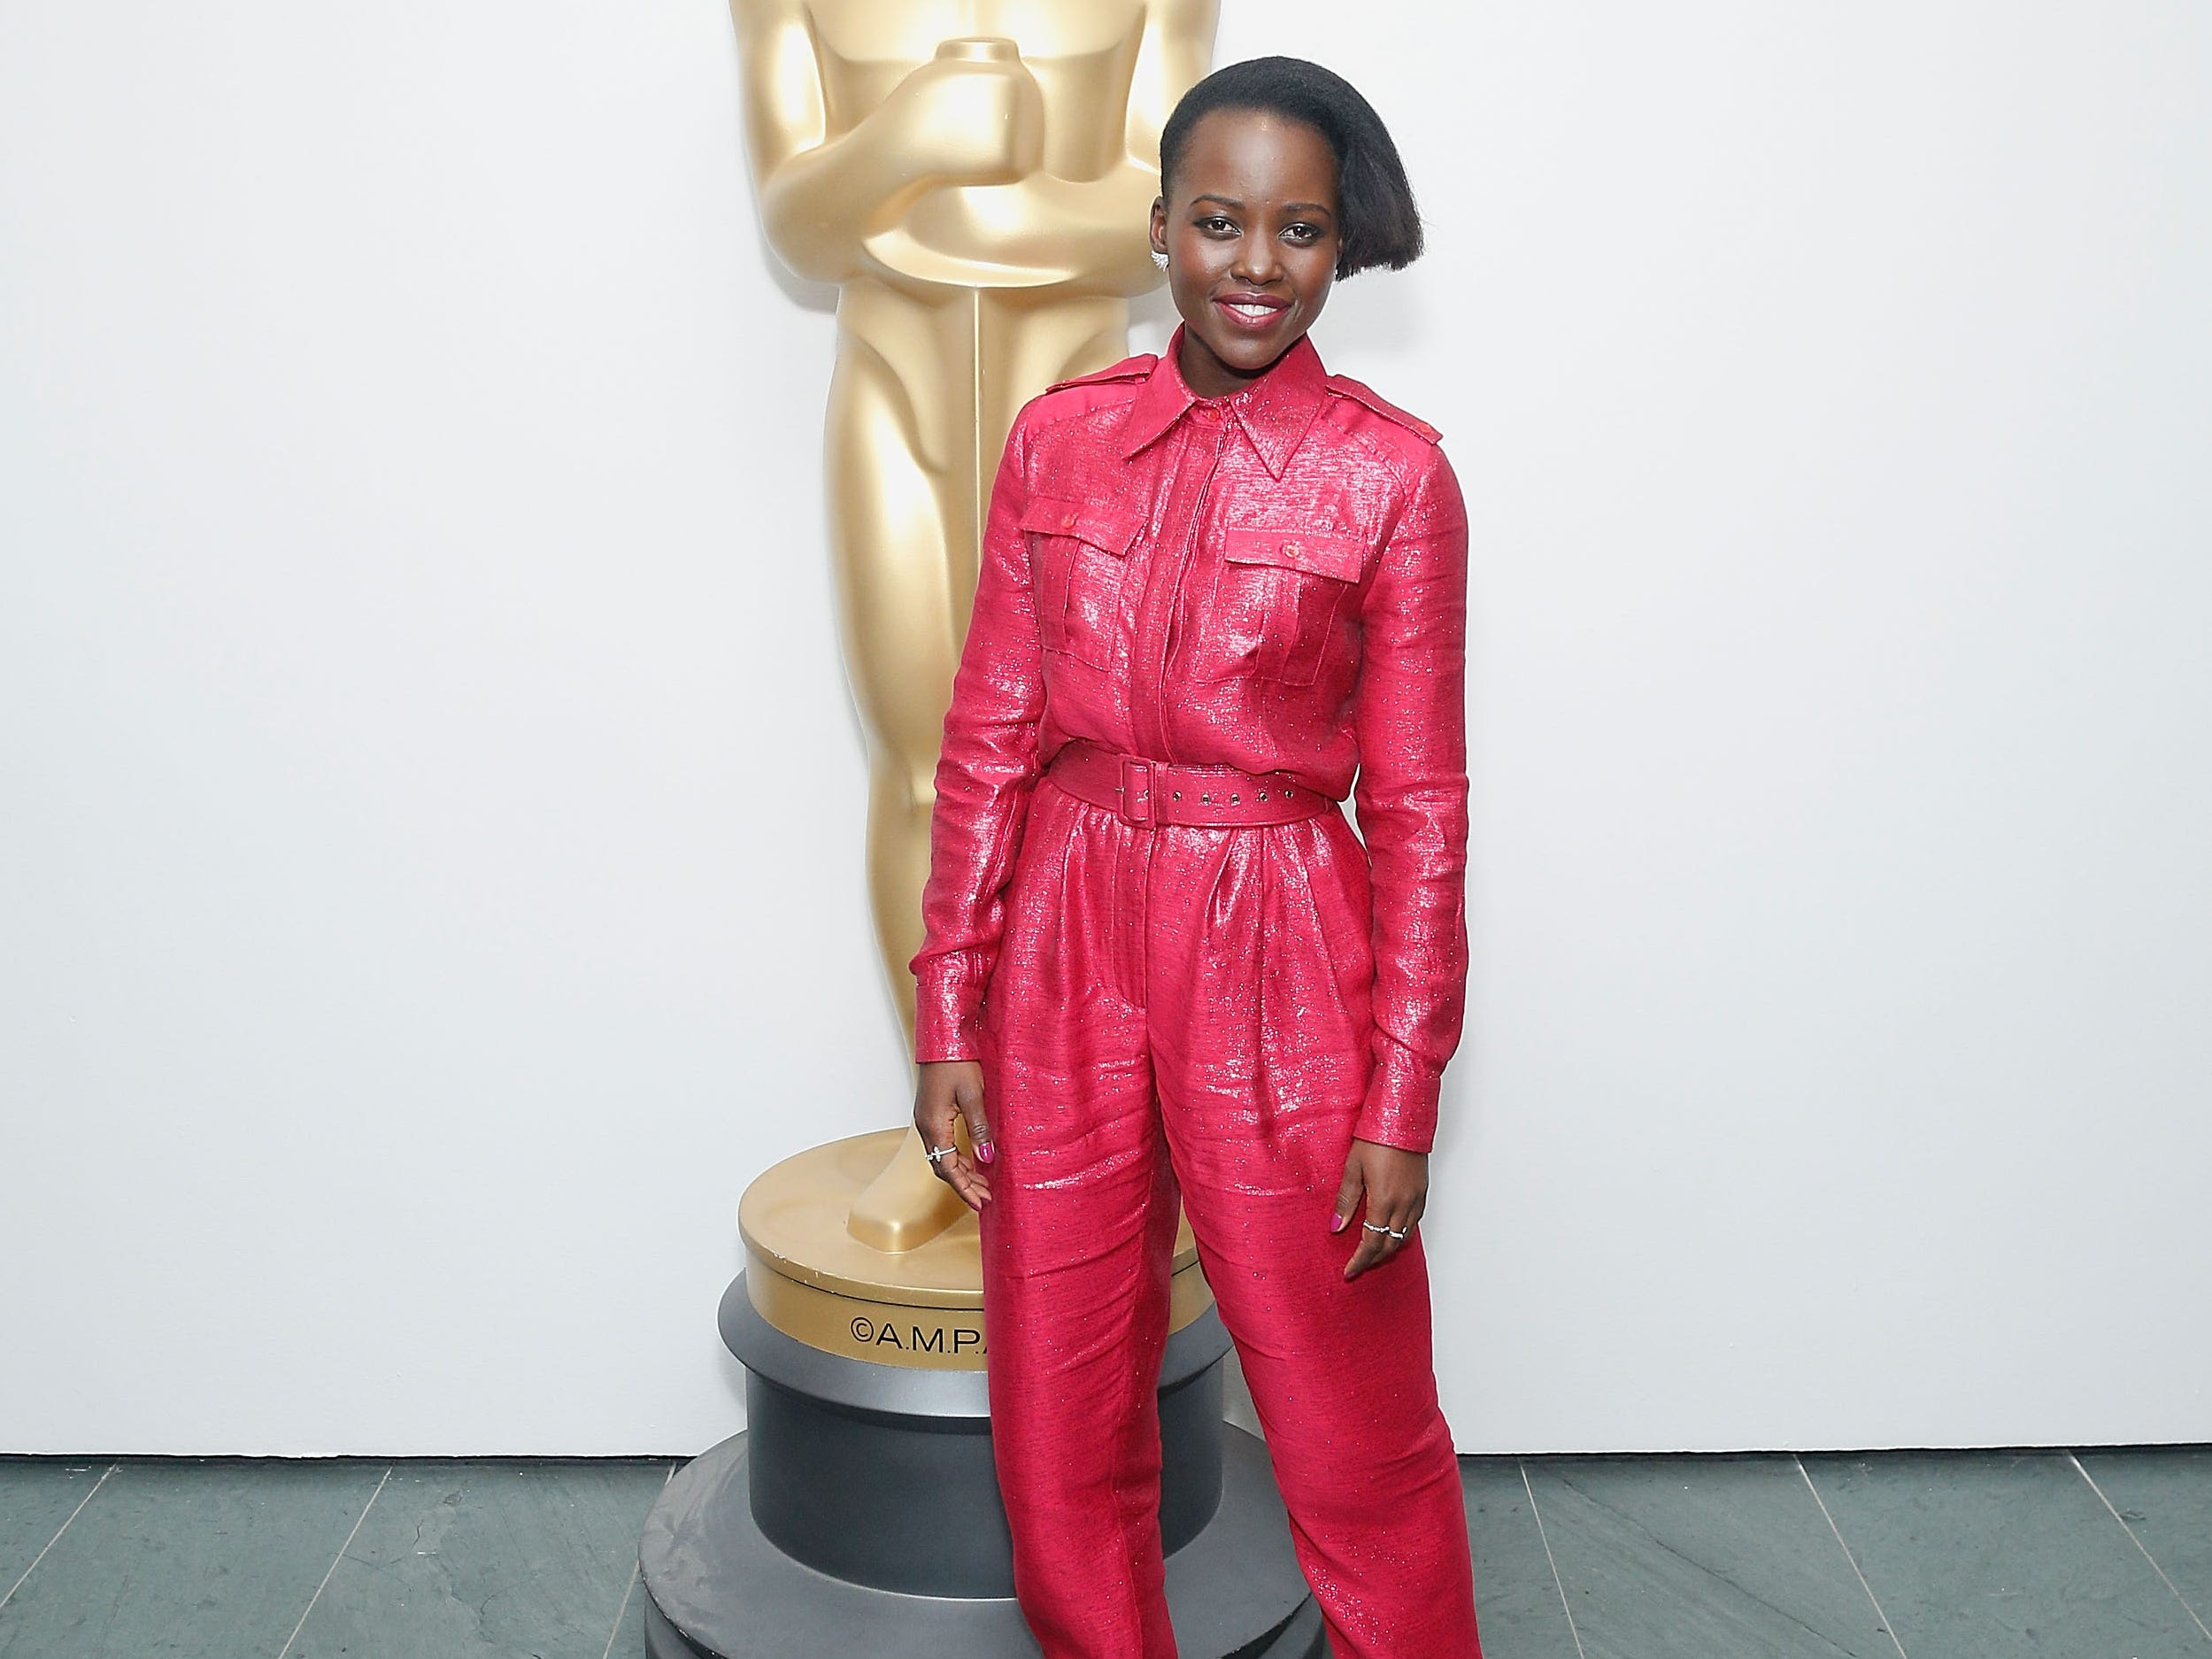 NEW YORK, NY - MARCH 18:  Actor Lupita Nyong'o attends The Academy of Motion Picture Arts and Sciences official screening of Us at the MoMA Celeste Bartos Theater on March 18, 2019 in New York City.  (Photo by ) ORG XMIT: 775316155 ORIG FILE ID: 1131555017